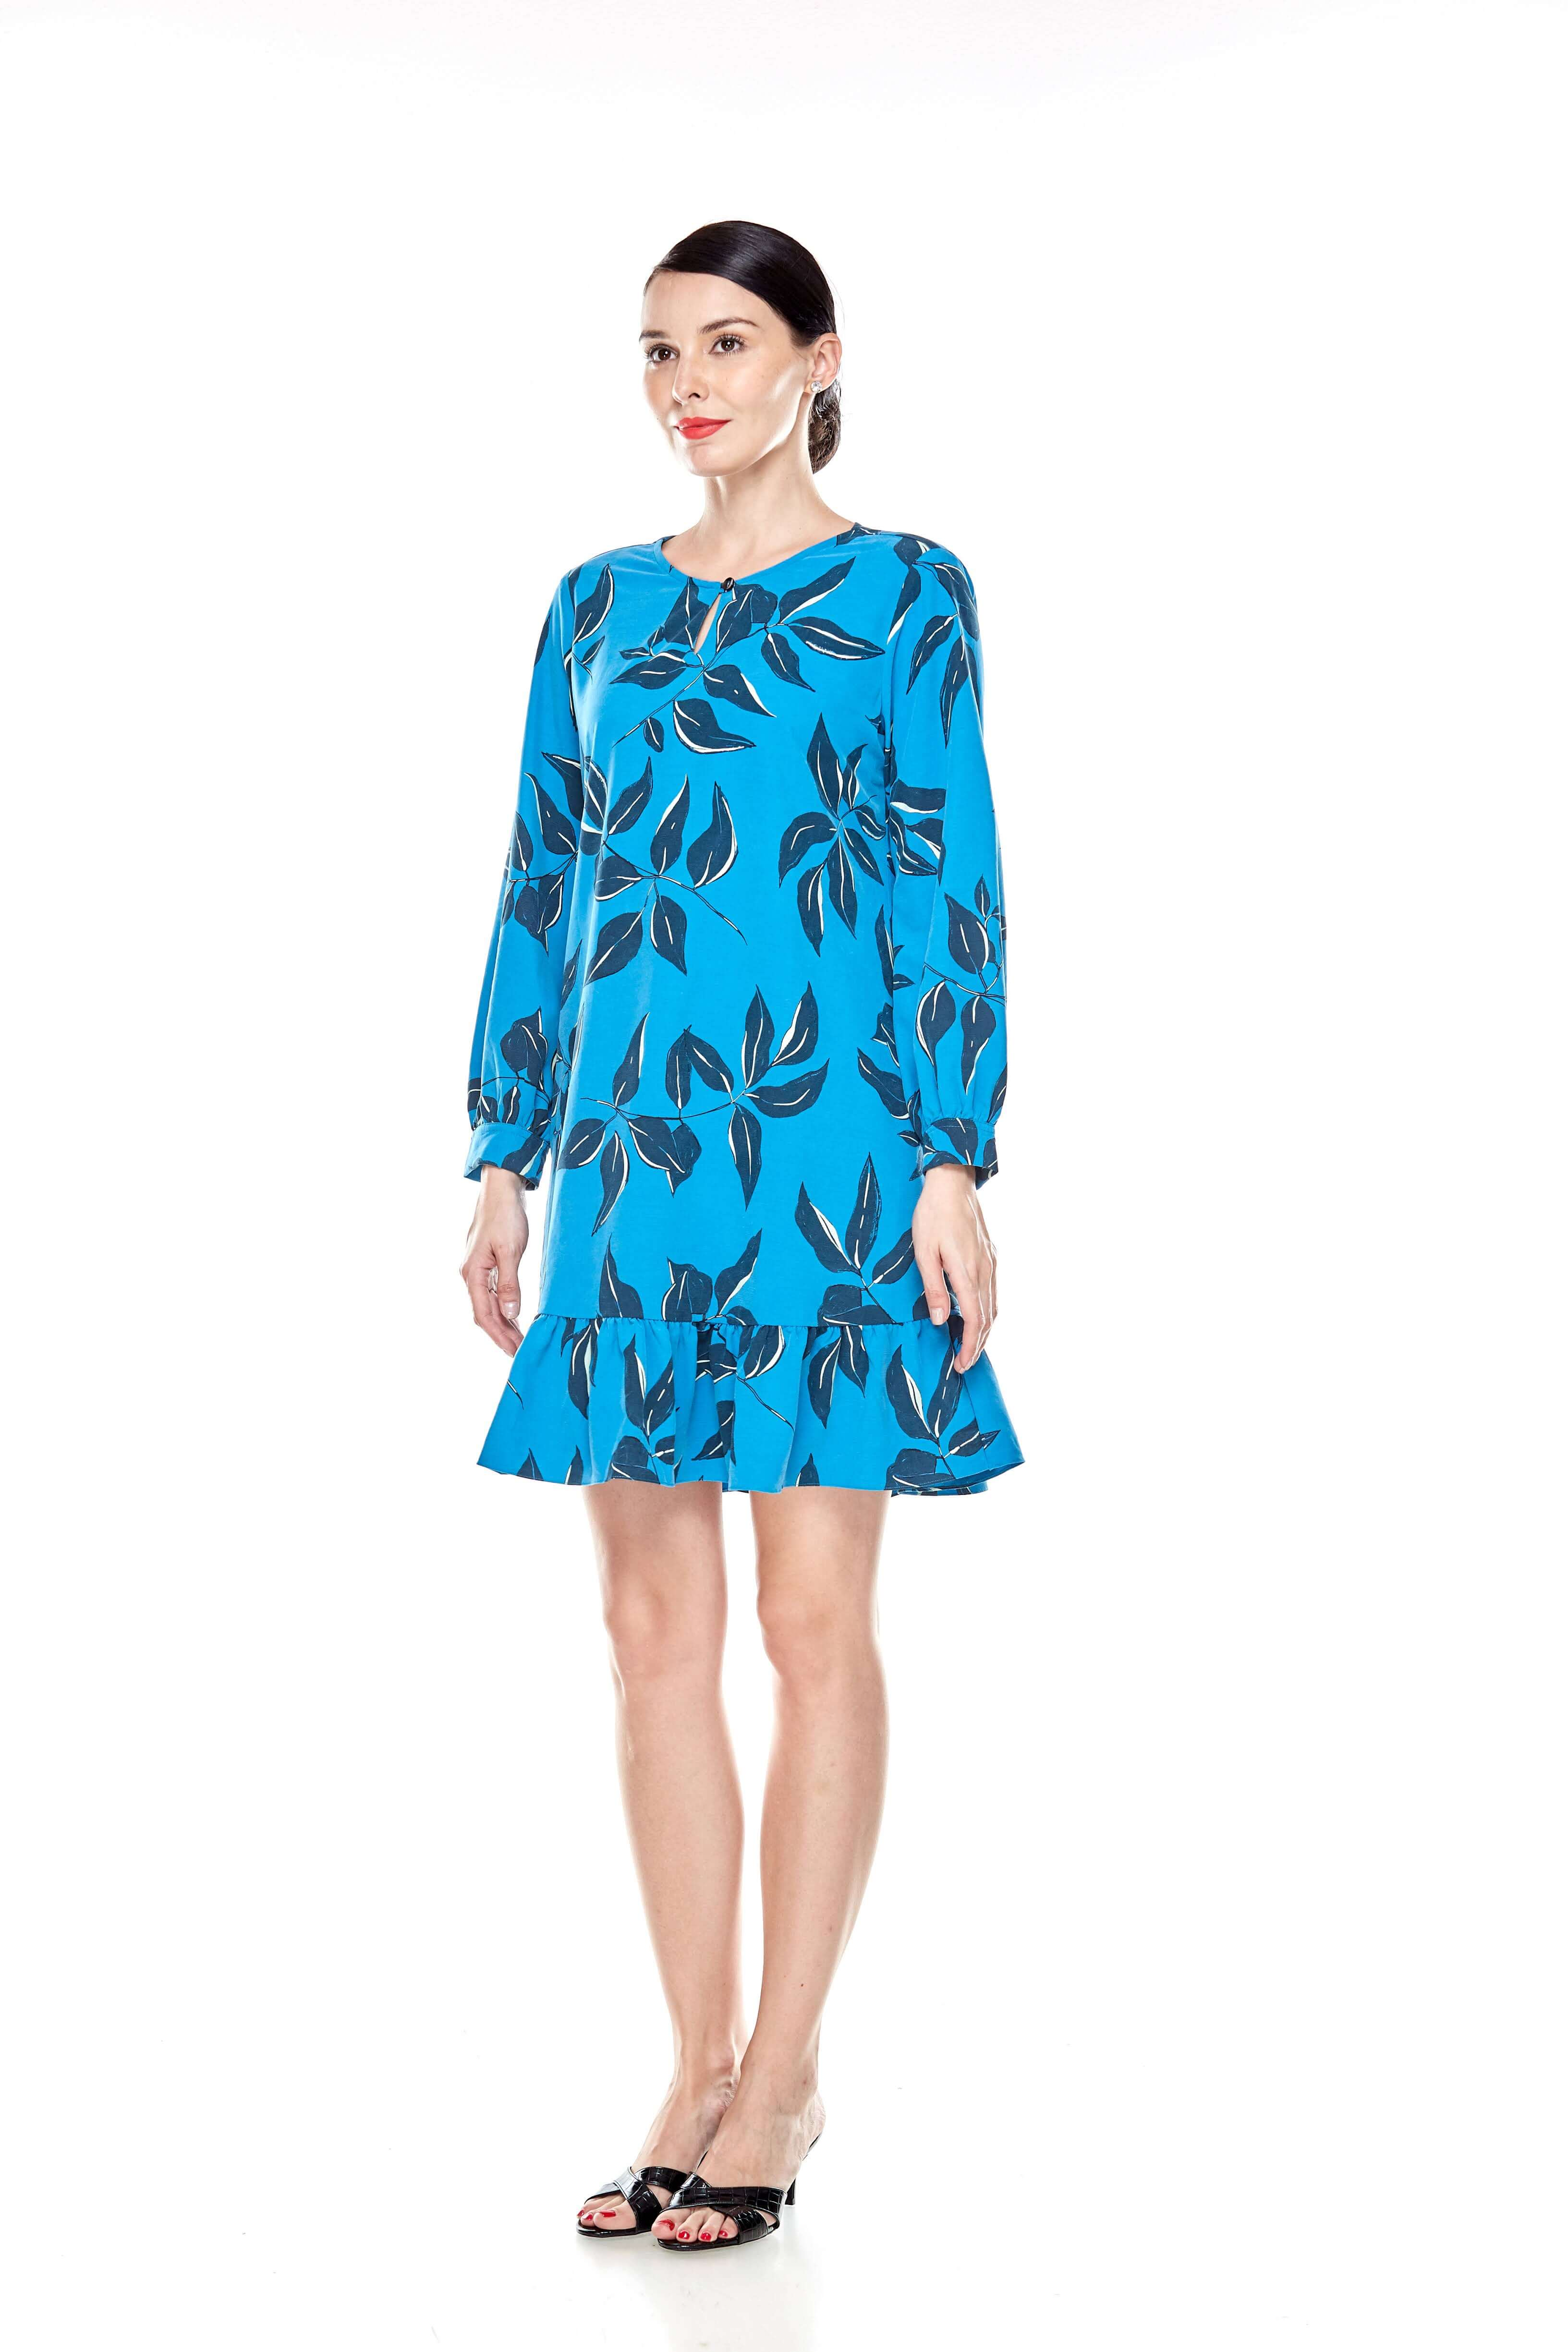 Mosaic Blue Printed Tunic With Bow Sleeves (3)